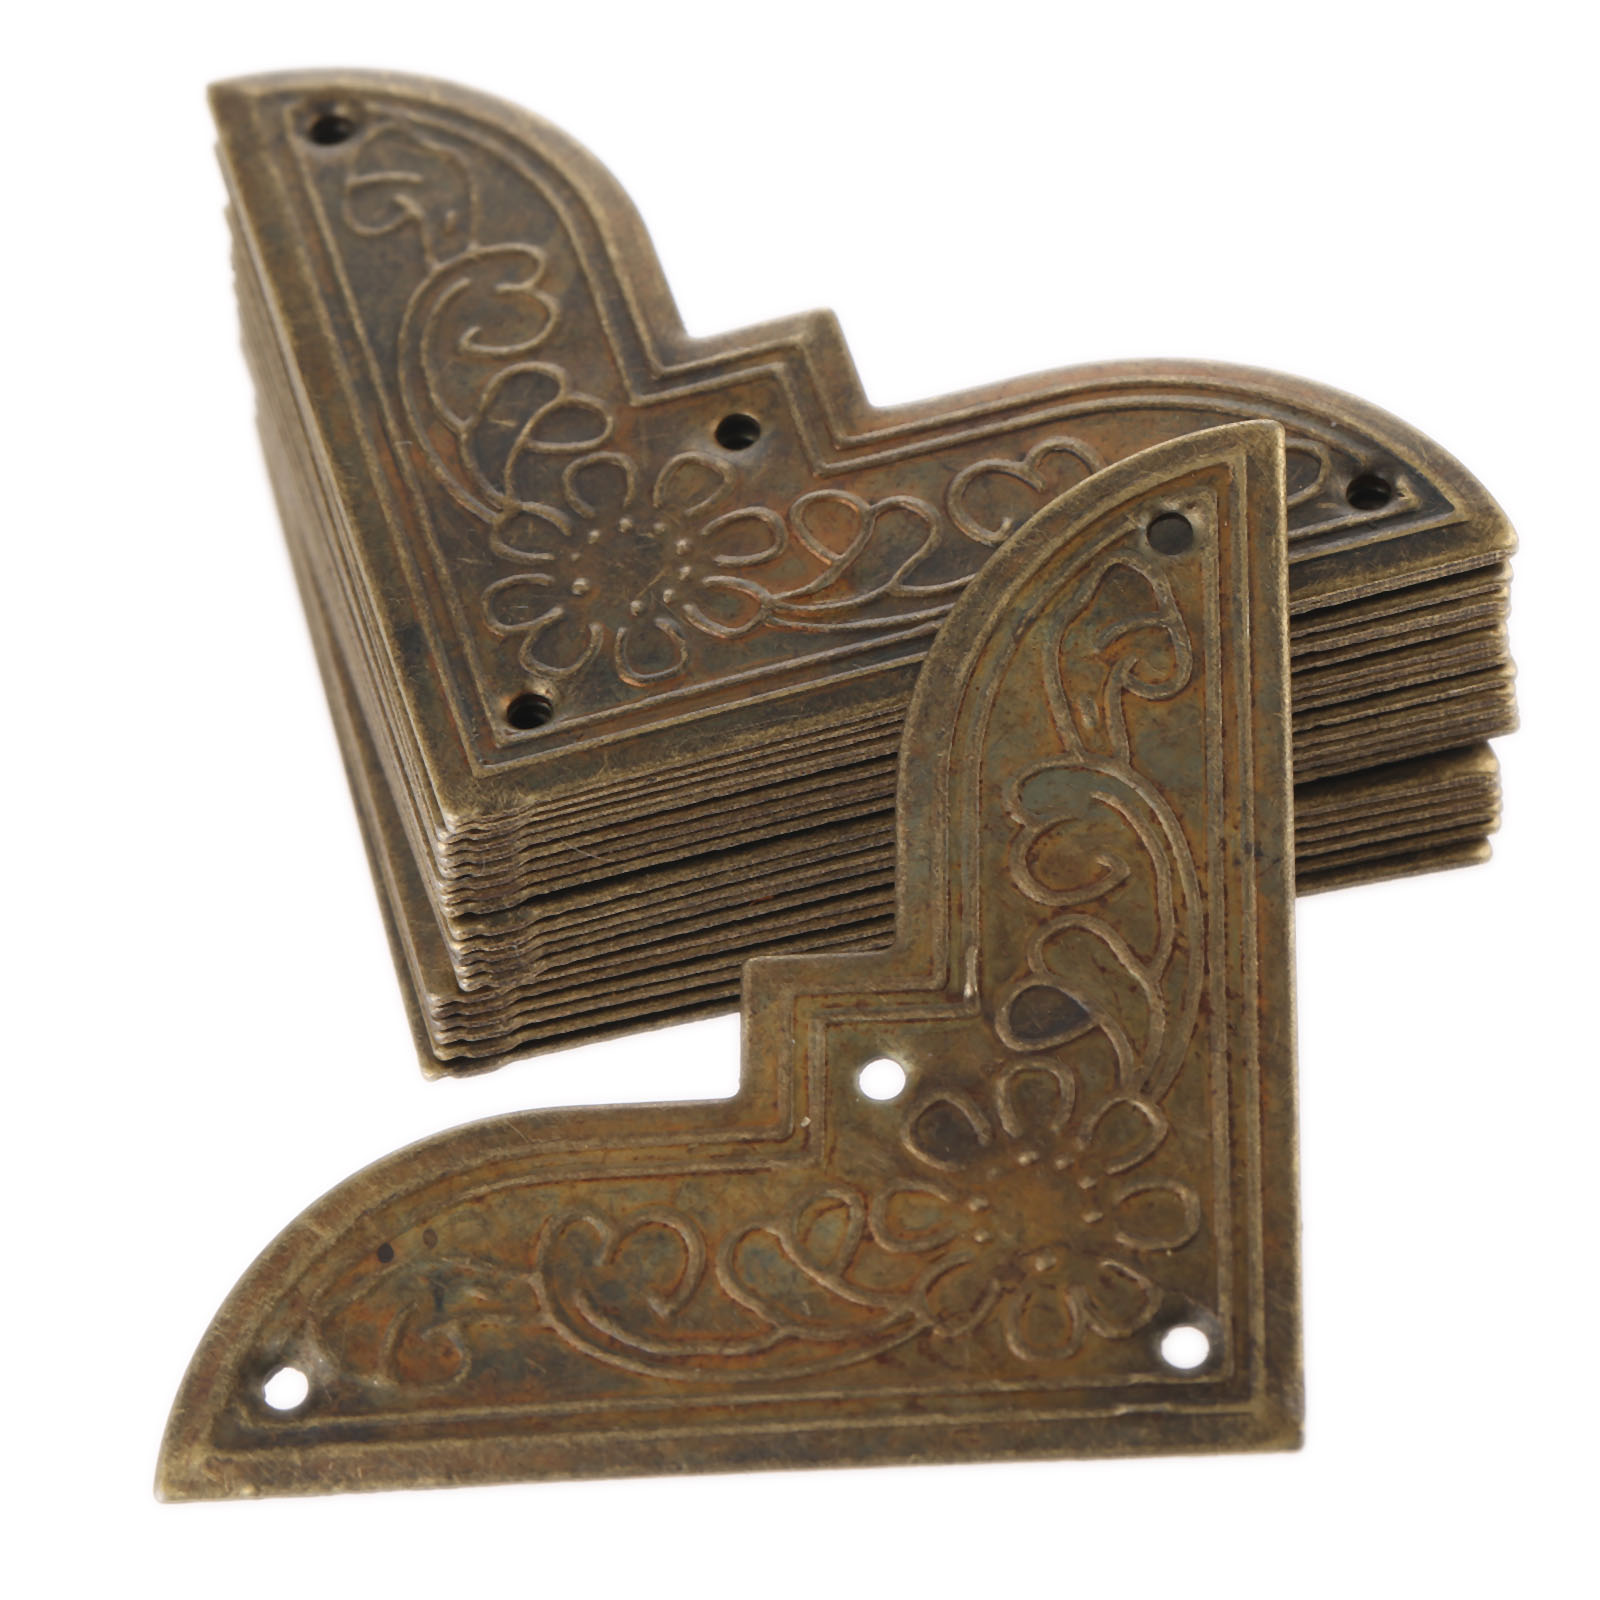 20Pcs Furniture Fittings Antique Corner Bracket Jewelry Gift Box Wood Case Decorative Feet Leg Corner Protector for Furniture 12pcs antique metal decorative protective corners jewelry box gift wood case feet leg corner guard for furniture 24 screws